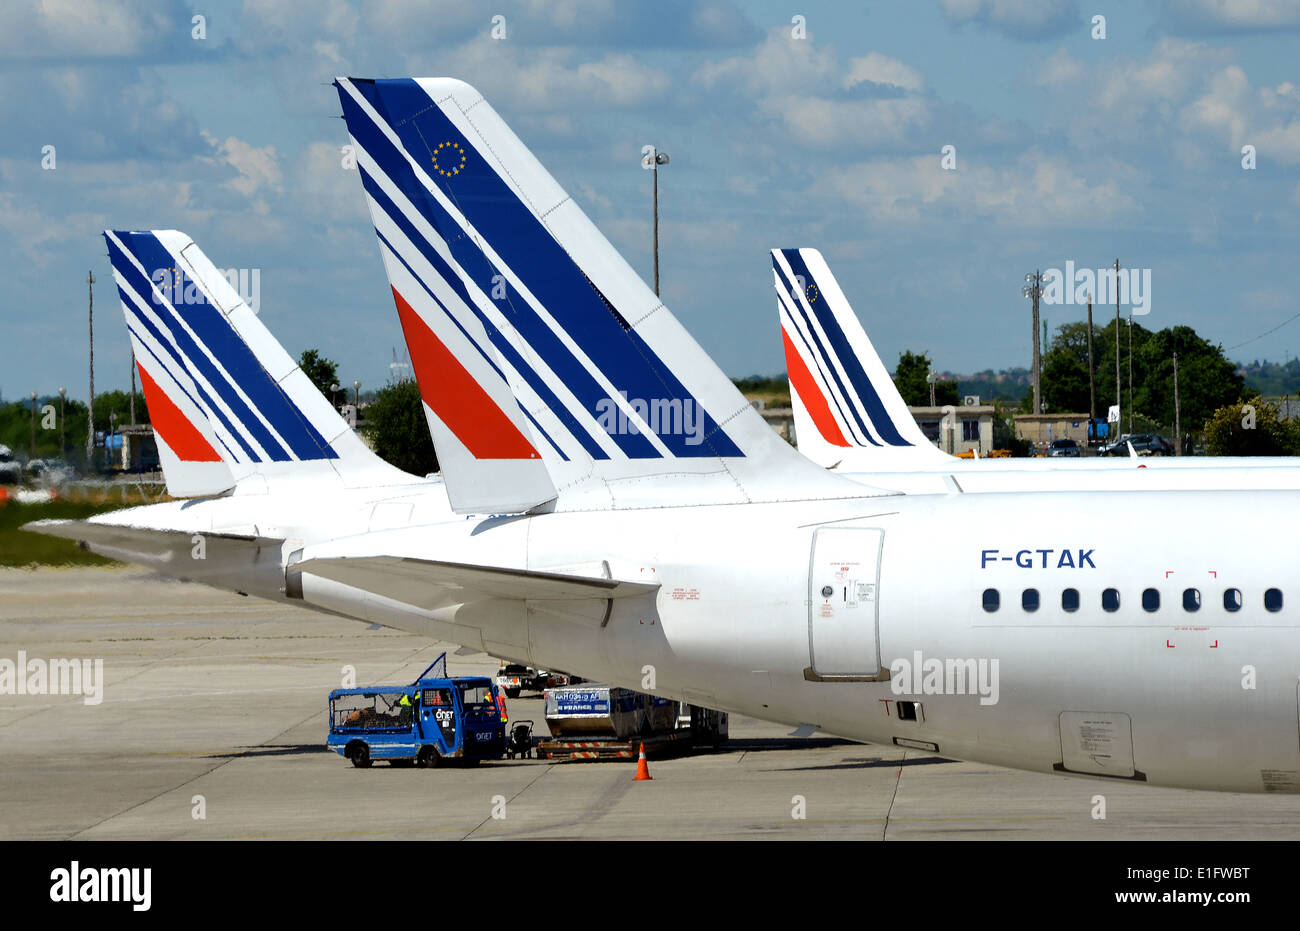 tails of Air France airplanes Roissy Charles-de-Gaulle International airport France - Stock Image